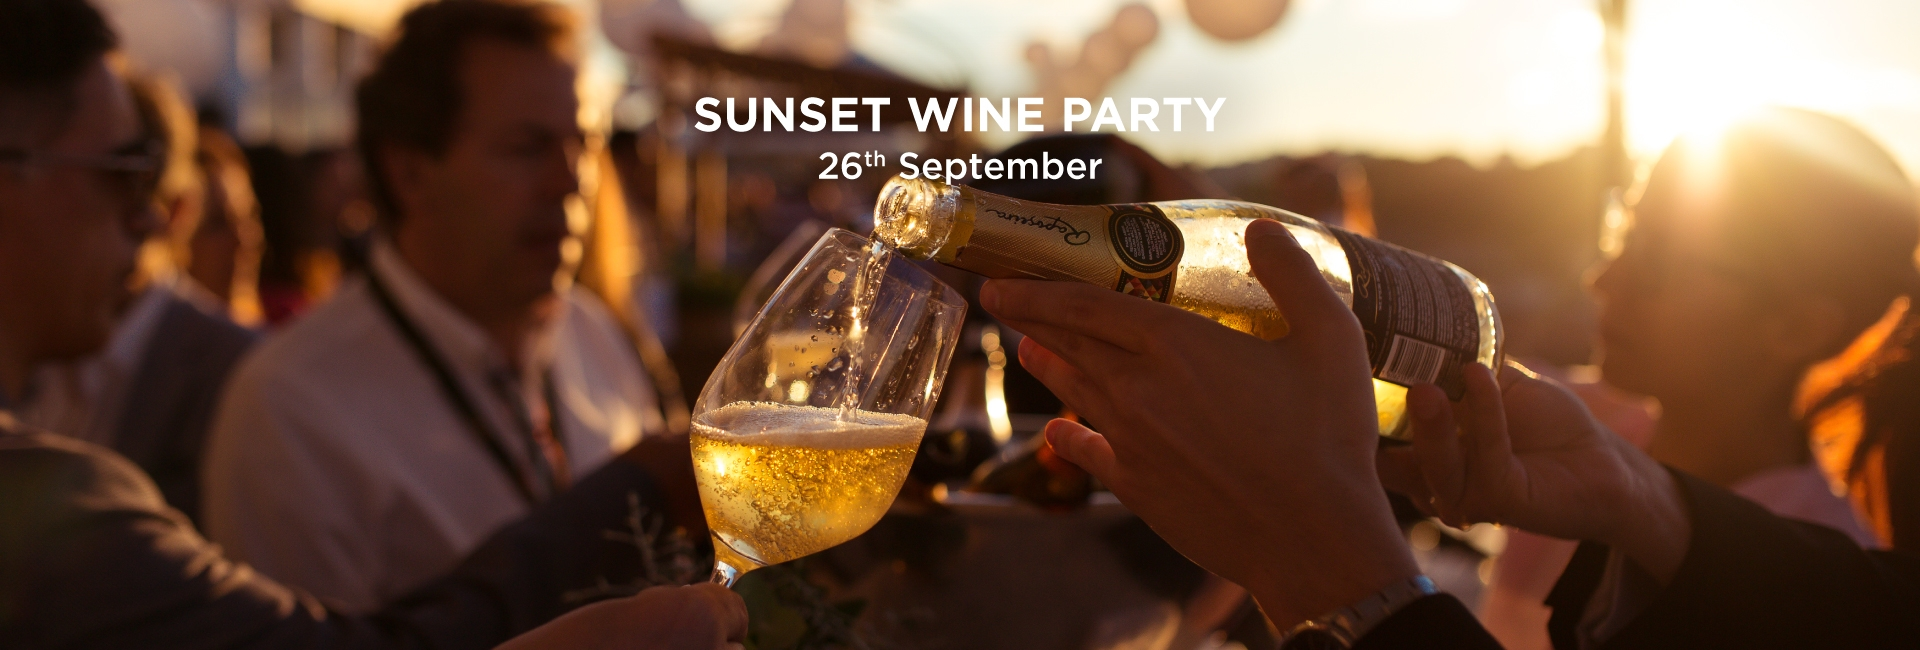 SUNSET WINE PARTY - 26TH SEPTEMBER